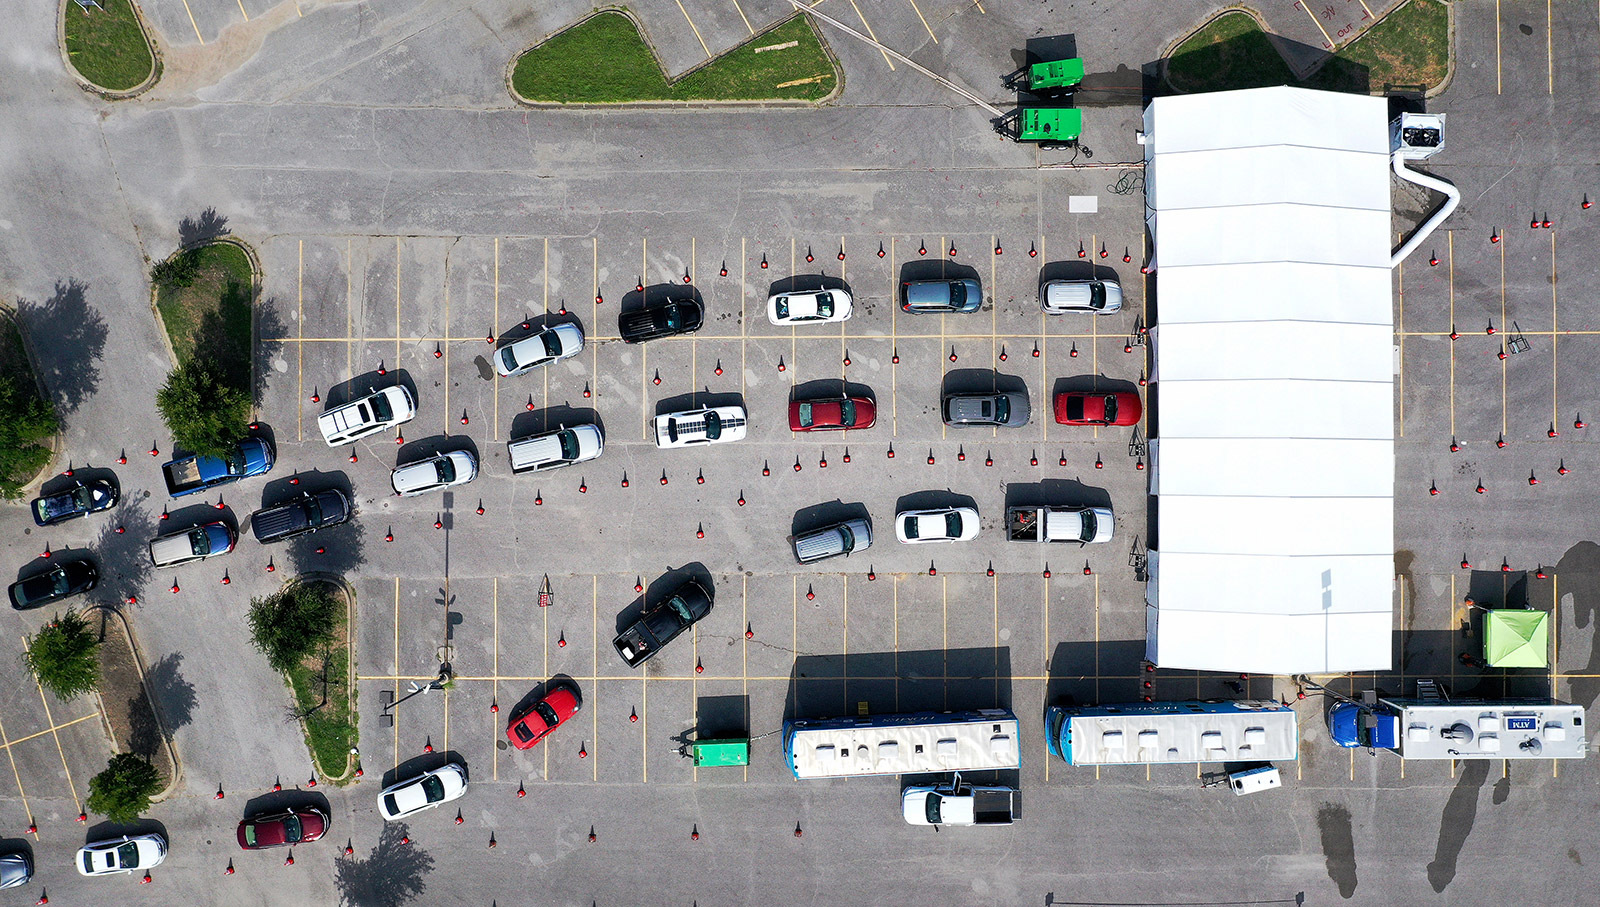 People wait in line at a drive-thru Covid-19 testing site in Dallas, Texas, on July 2.